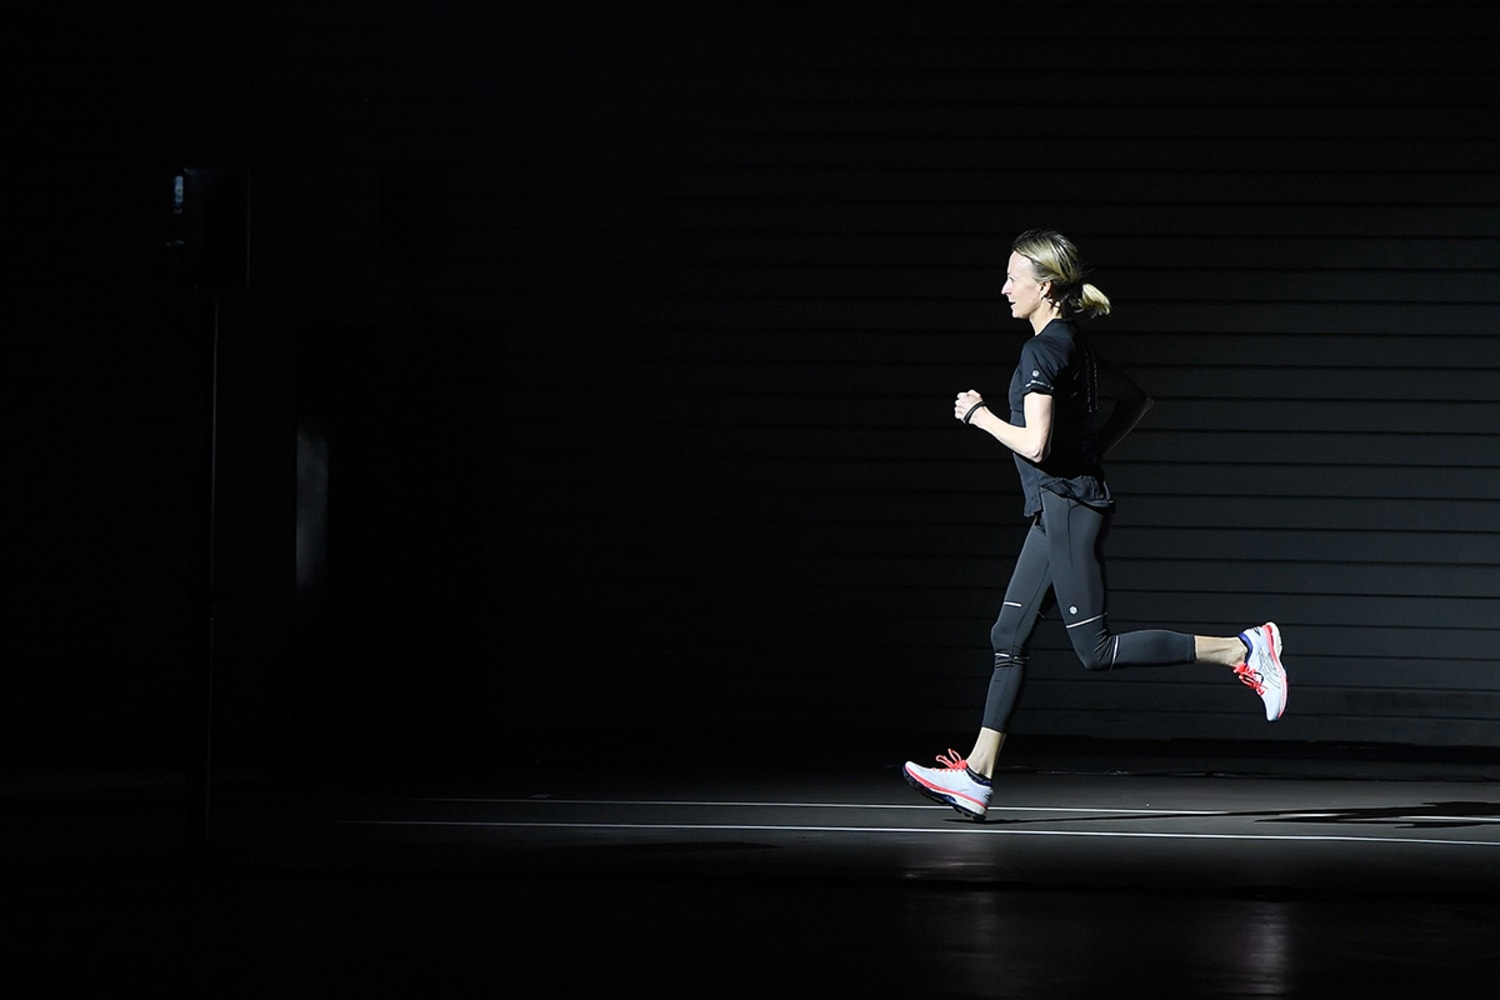 ASICS Launches The Blackout Track In London